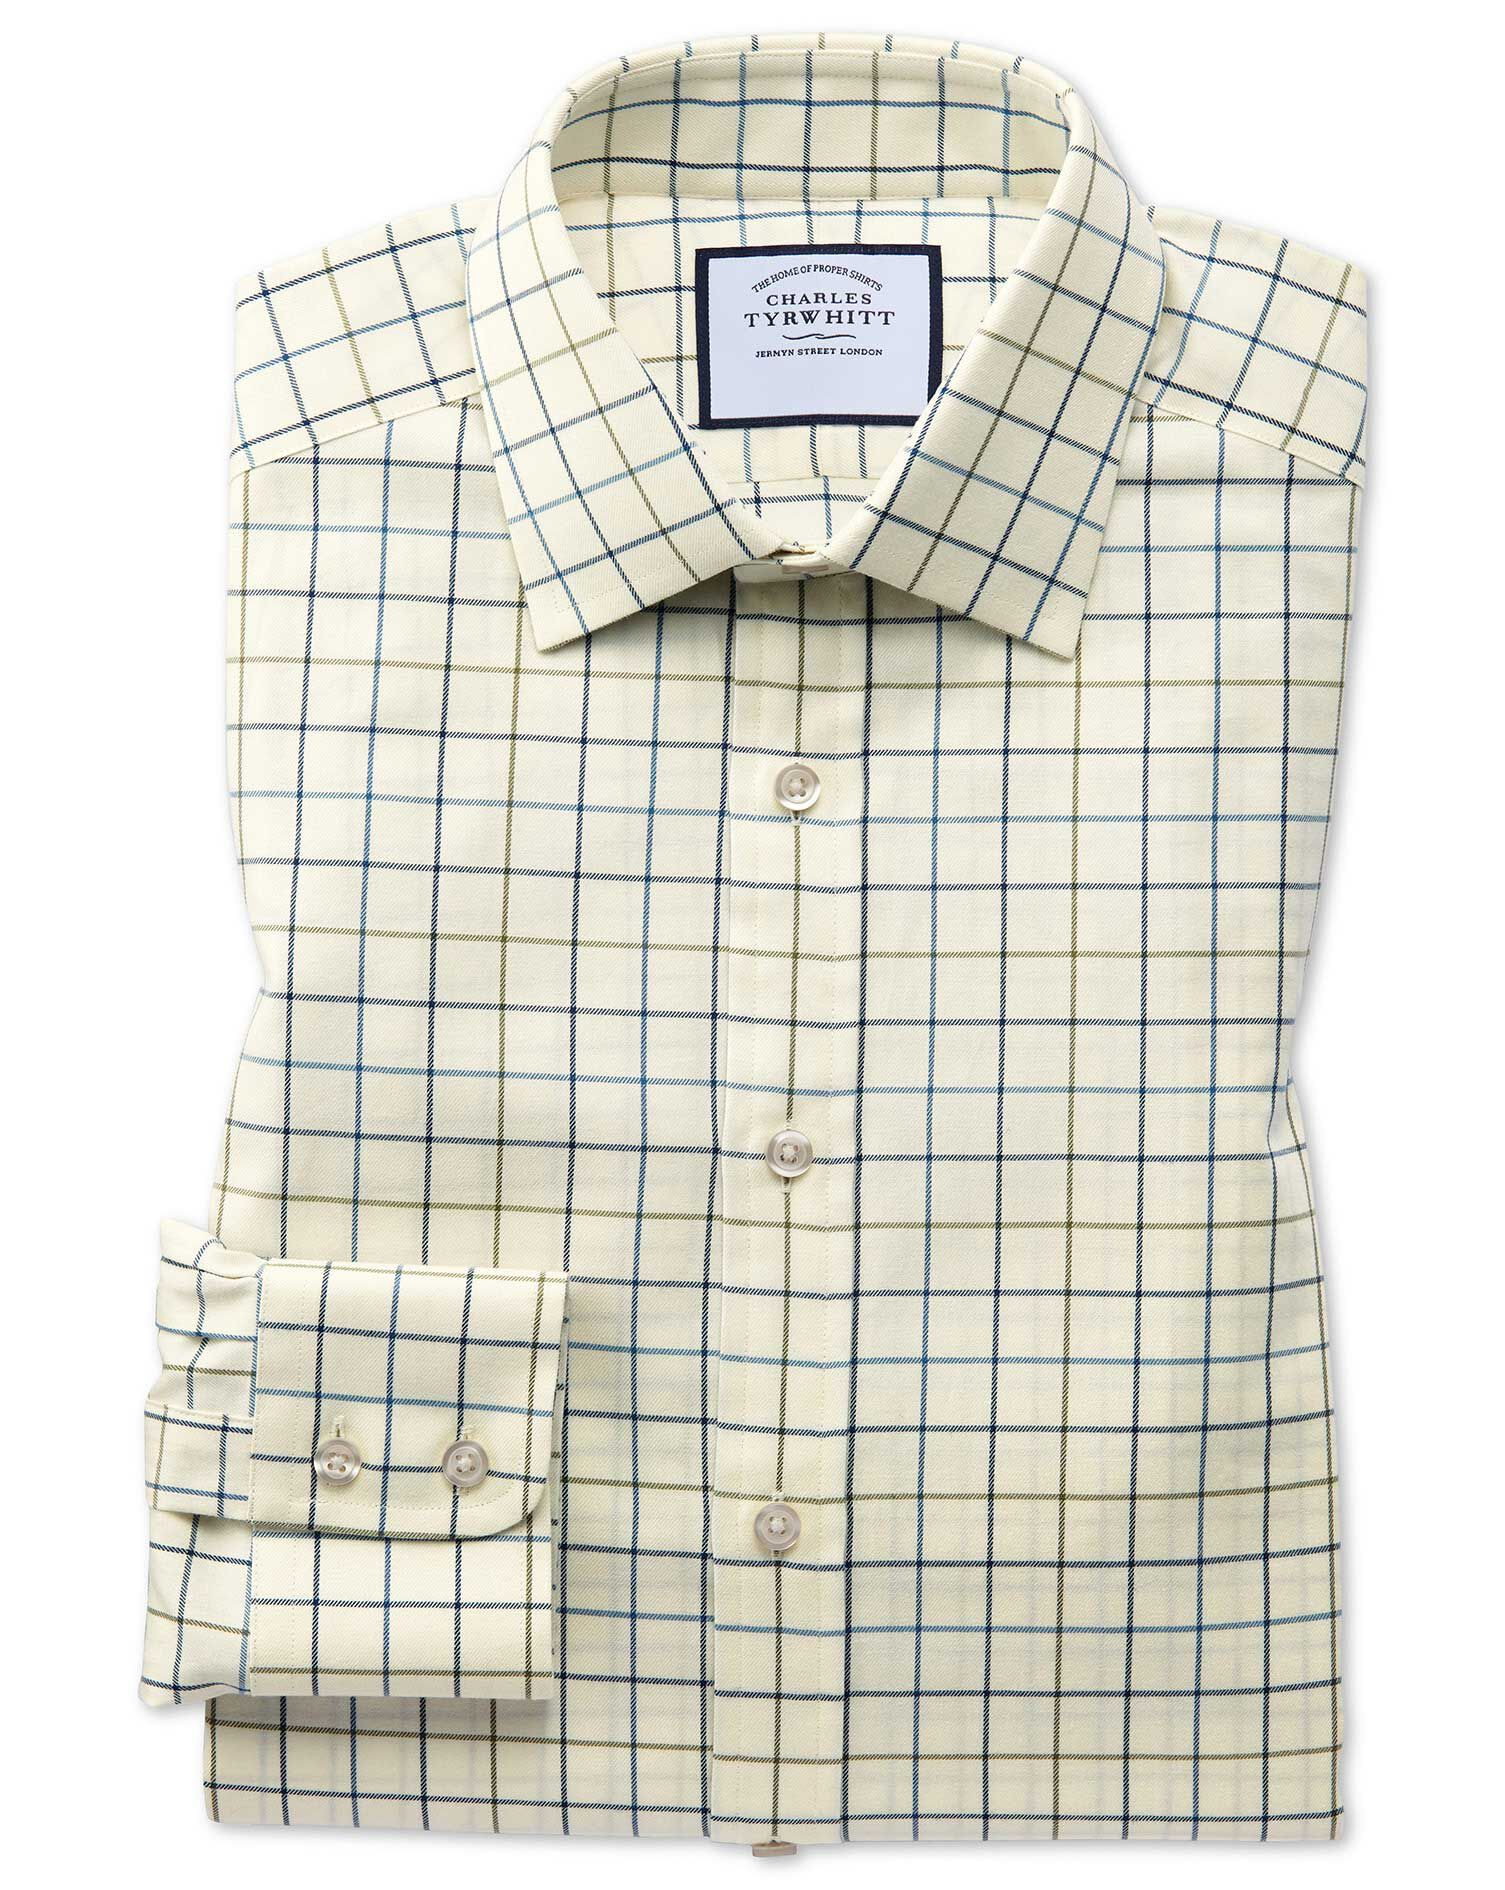 Classic Fit Navy and Green Tattersall Country Check Cotton Formal Shirt Single Cuff Size 17/36 by Ch